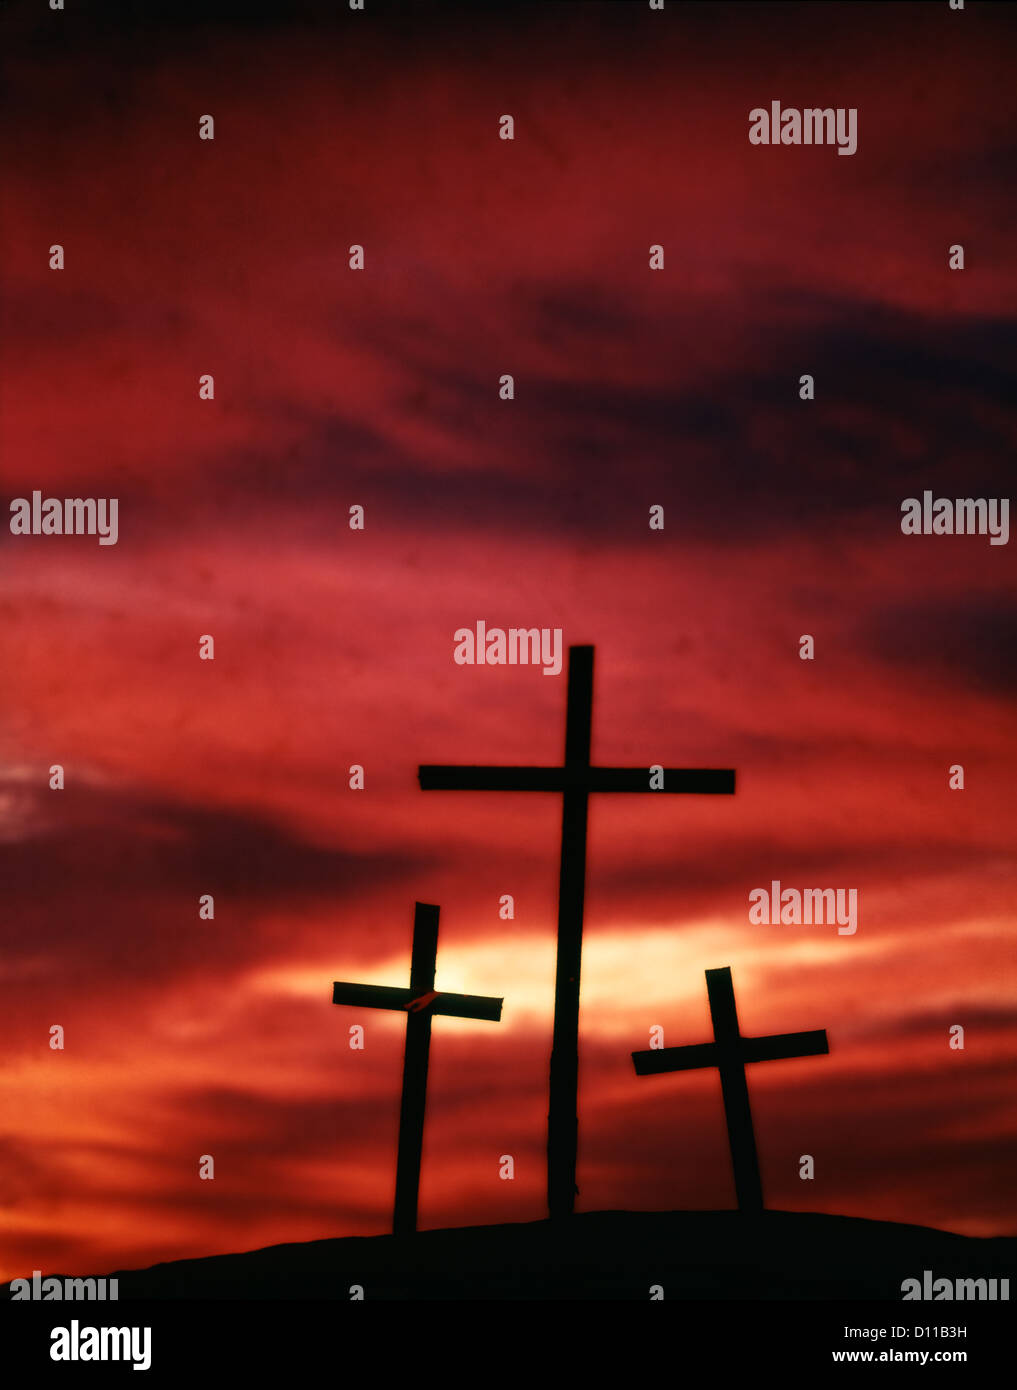 Silhouette of the holy cross on background of storm clouds stock - 1960s Symbolic Three Crosses Of Calvary Silhouetted Against Red Sky Stock Image